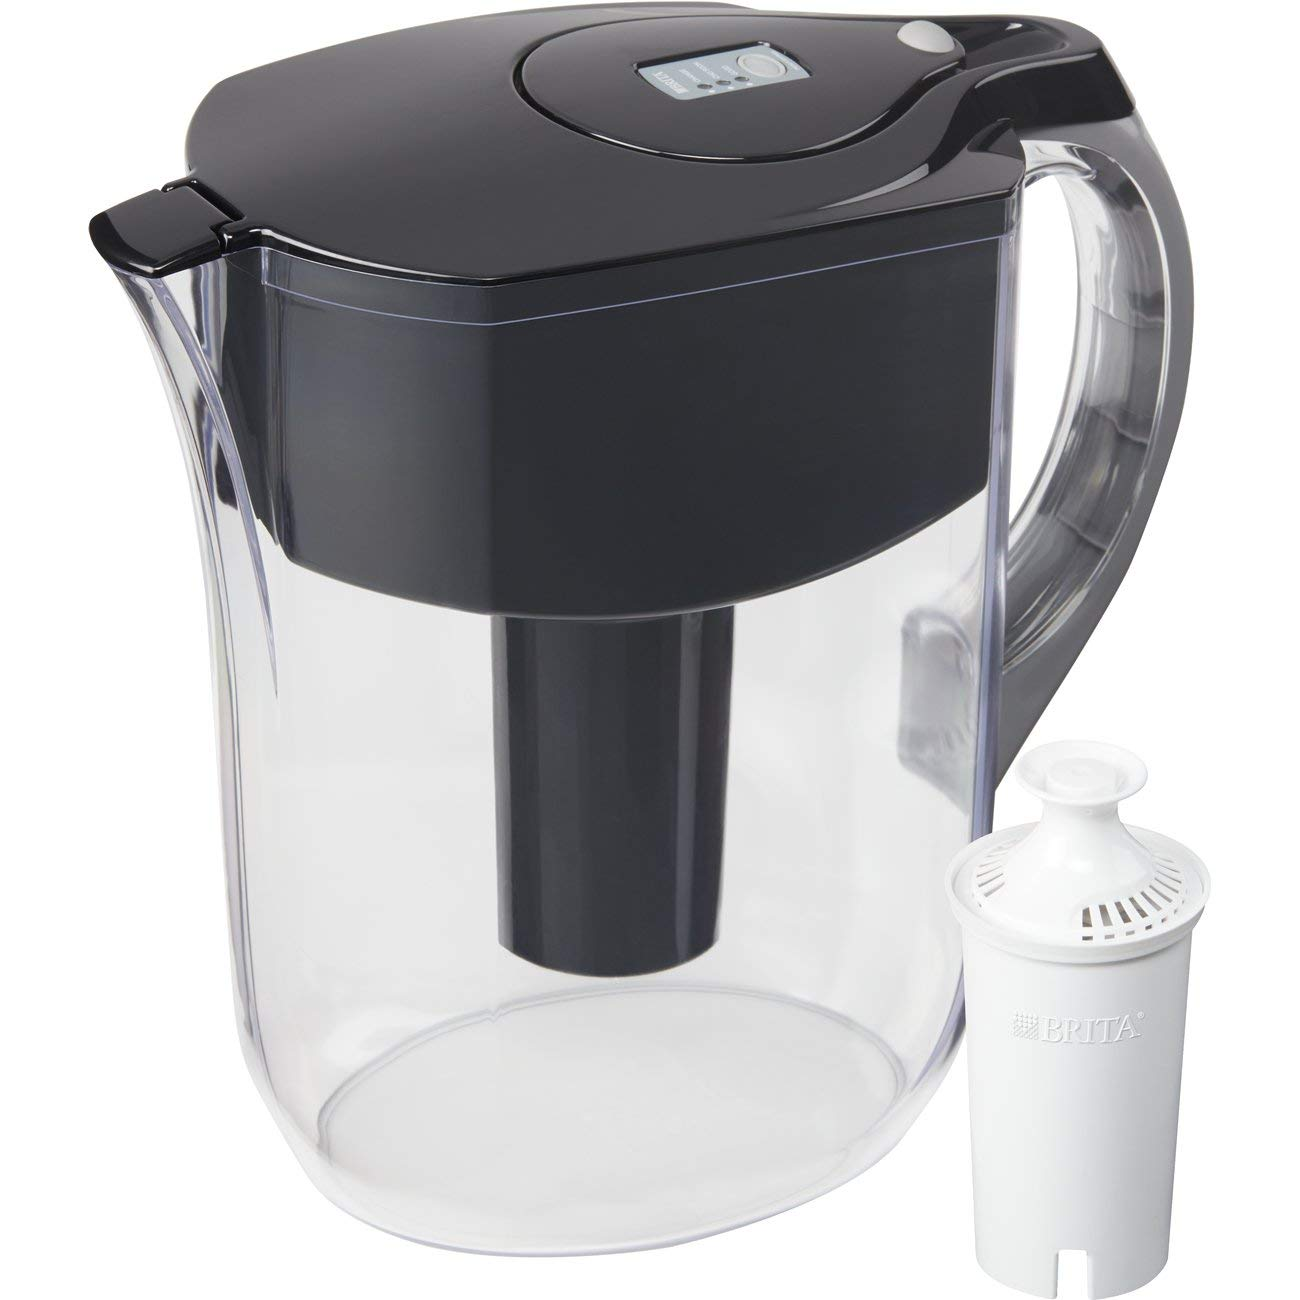 Brita Large 10 Cup Water Filter Pitcher with 1 Standard Filter, BPA Free – Grand, Black